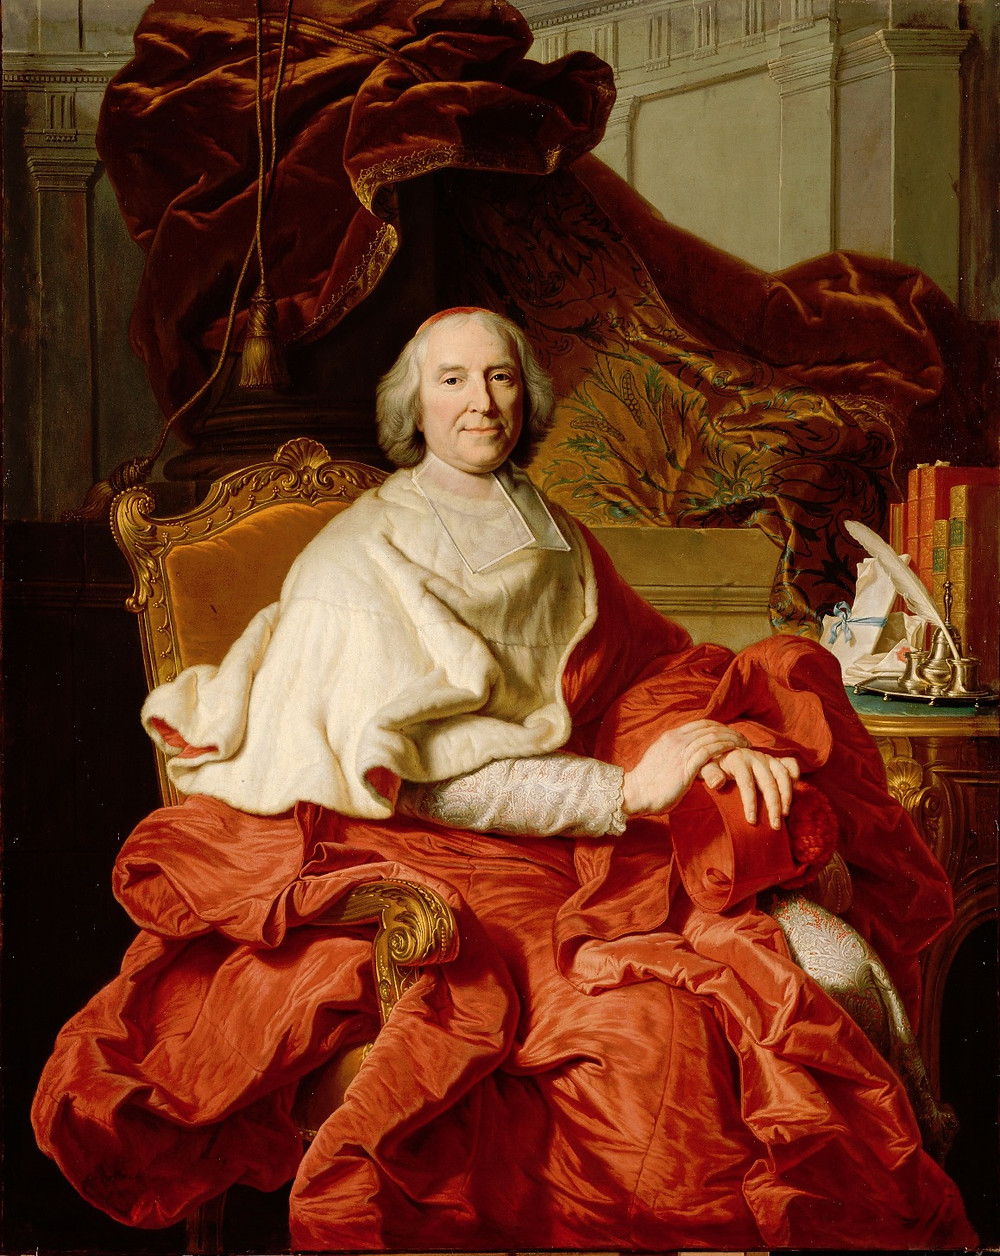 Hyacinthe Rigaud et atelier, Portrait du cardinal de Fleury, vers 1728, Royaume Uni, Goodwood House, collection duc de Richmond et Gordon